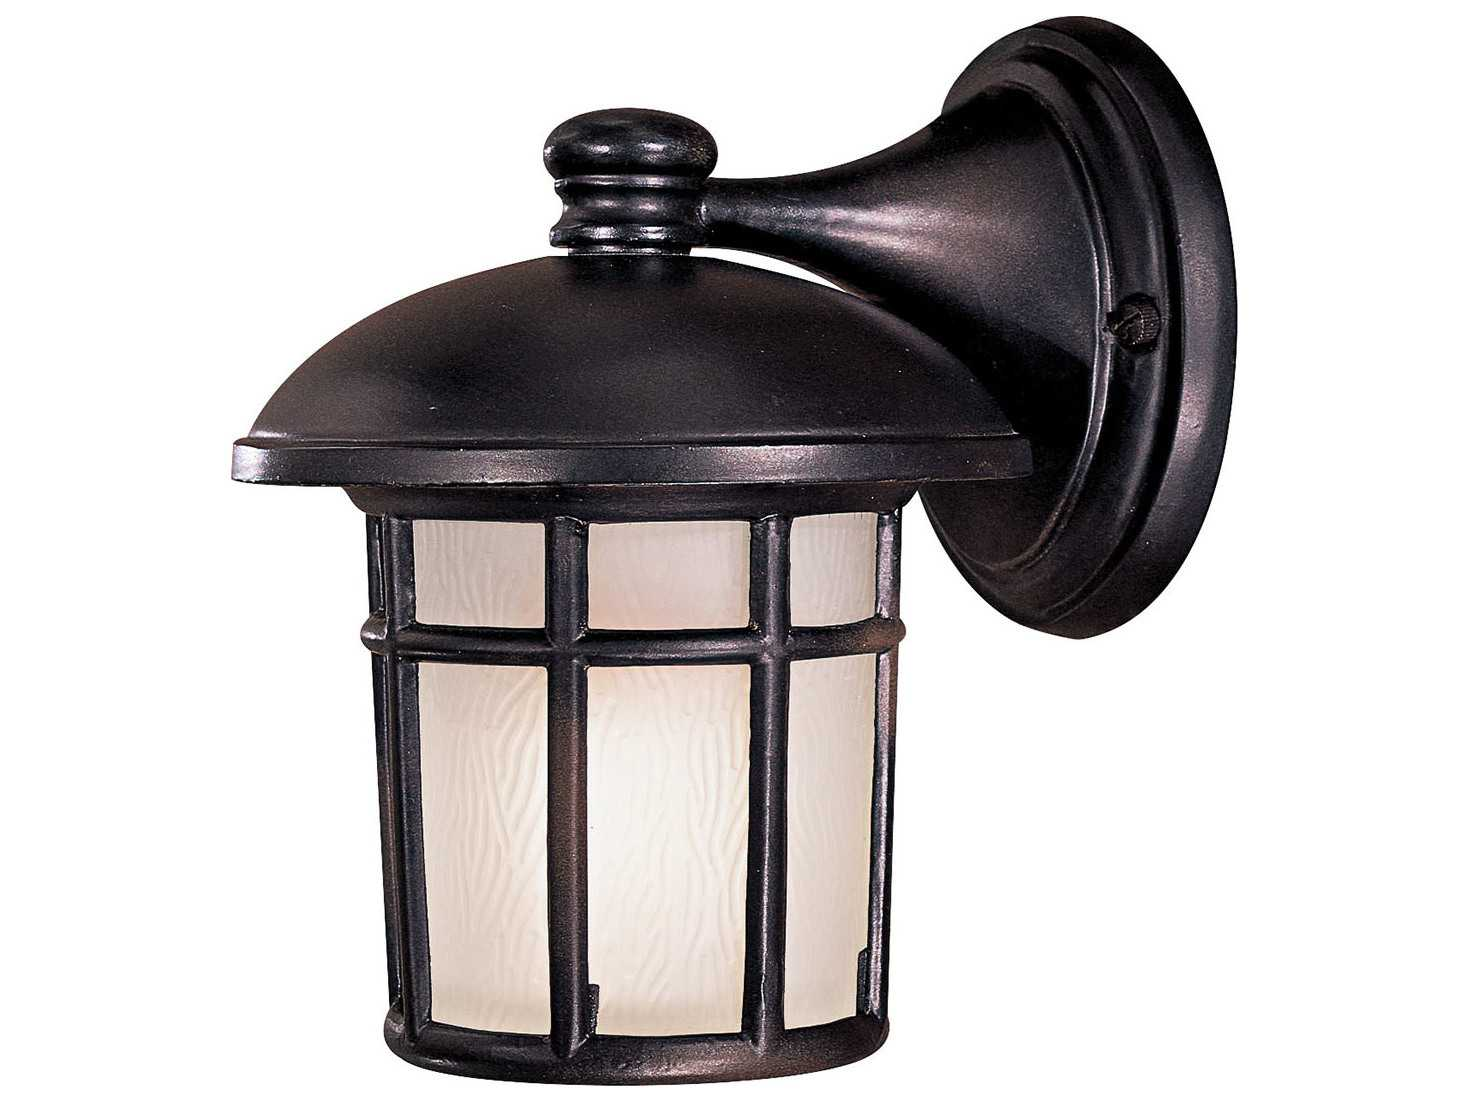 Minka Lavery Cranston Heritage Outdoor Wall light MGO825194PL